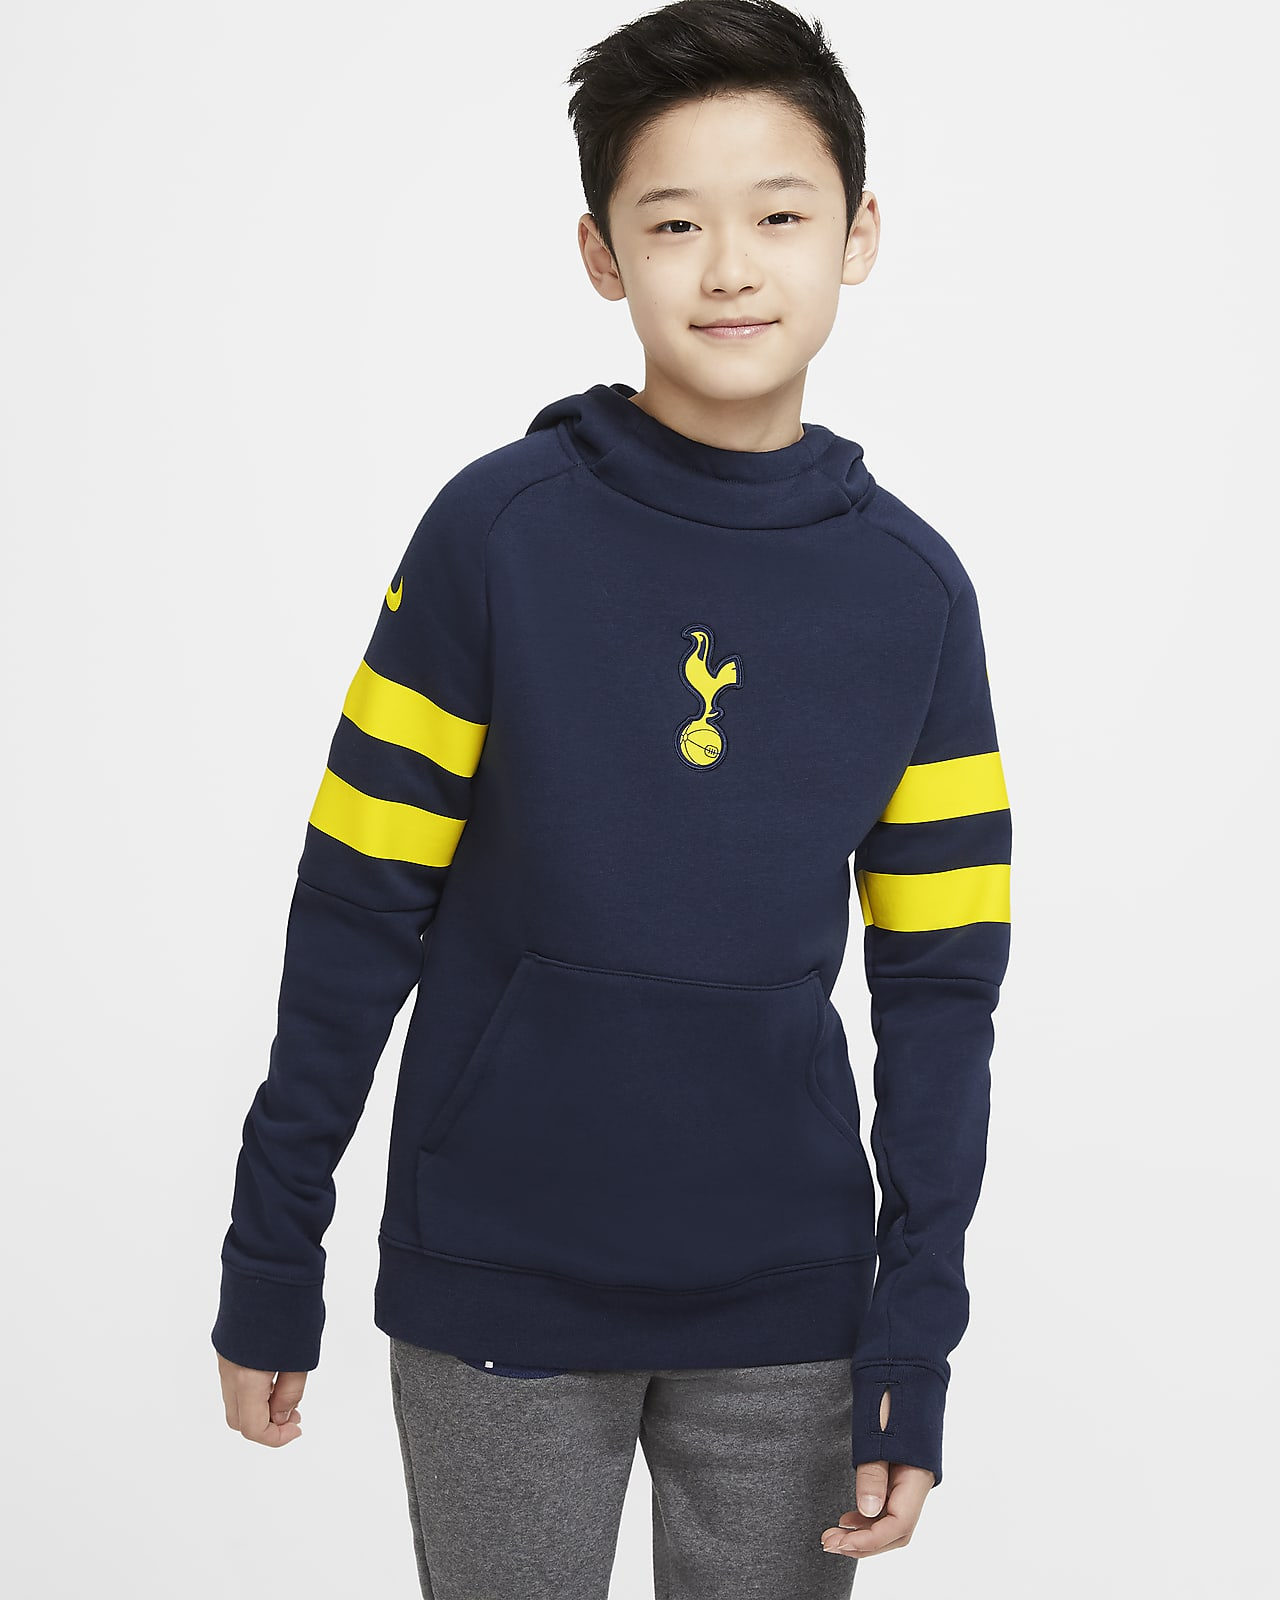 Tottenham Hotspur Older Kids' Fleece Pullover Football Hoodie